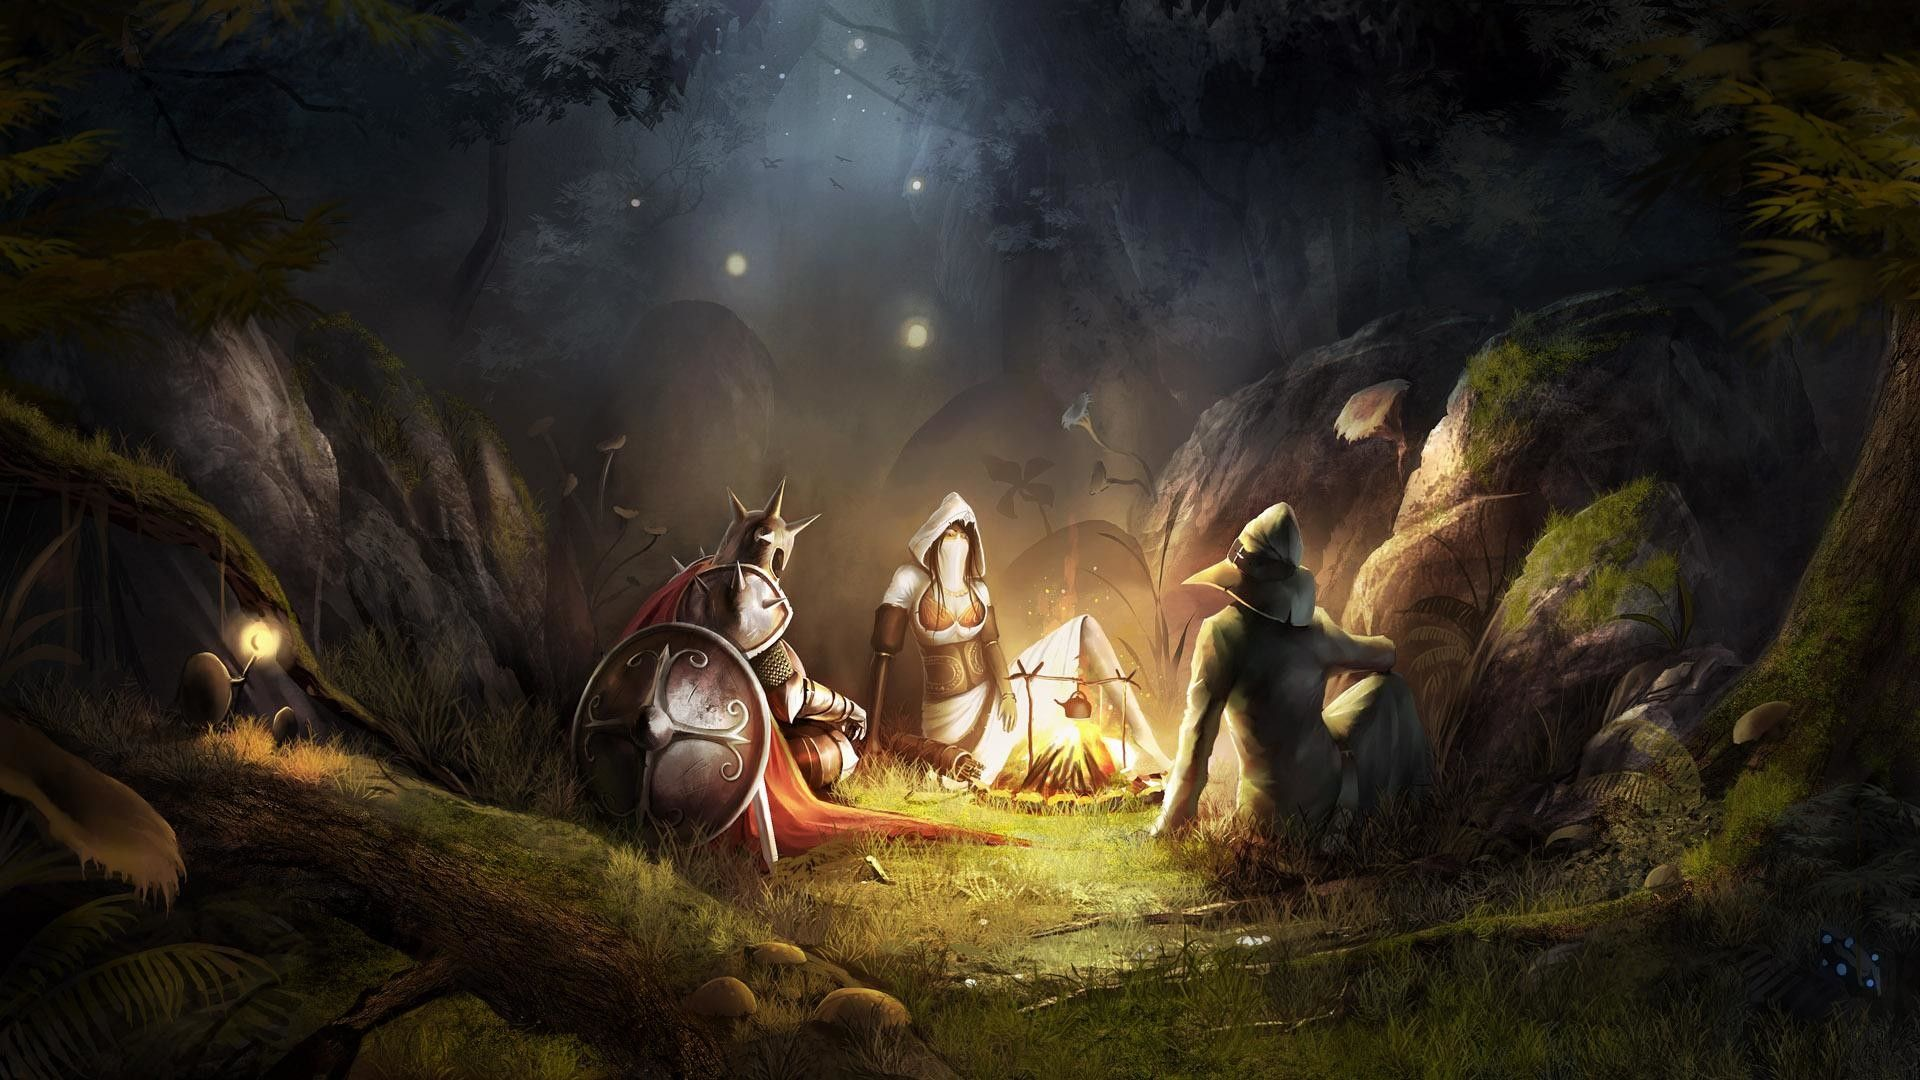 1920x1080 Wallpaper Wiki Hd Dungeons And Dragons Photos Pic Fantasy Pictures Campfire Stories Fantasy Background